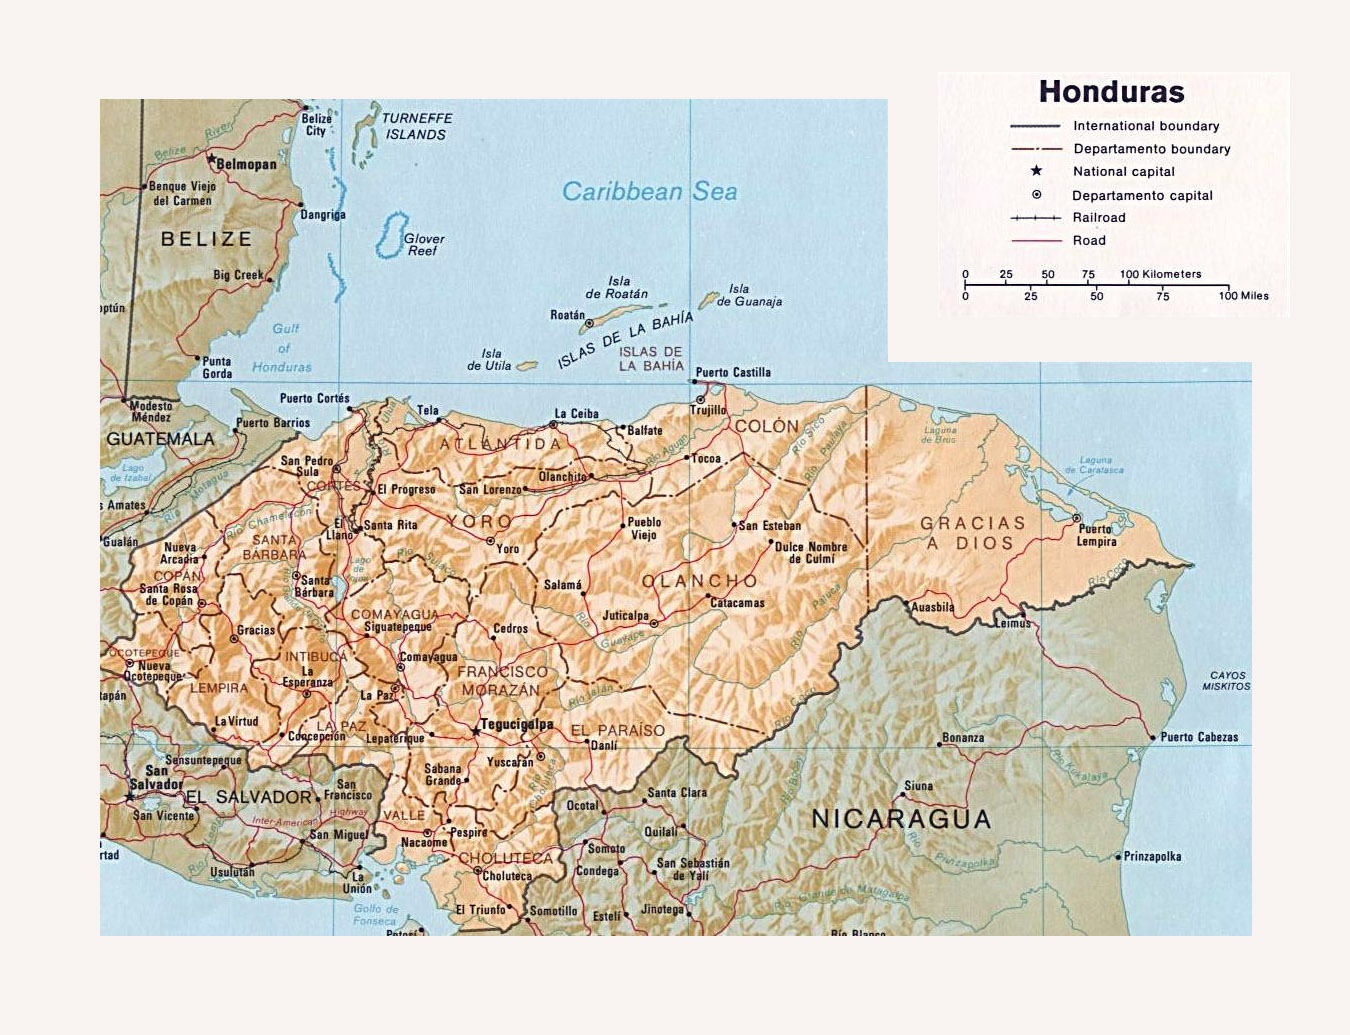 Detailed political and administrative map of Honduras with relief